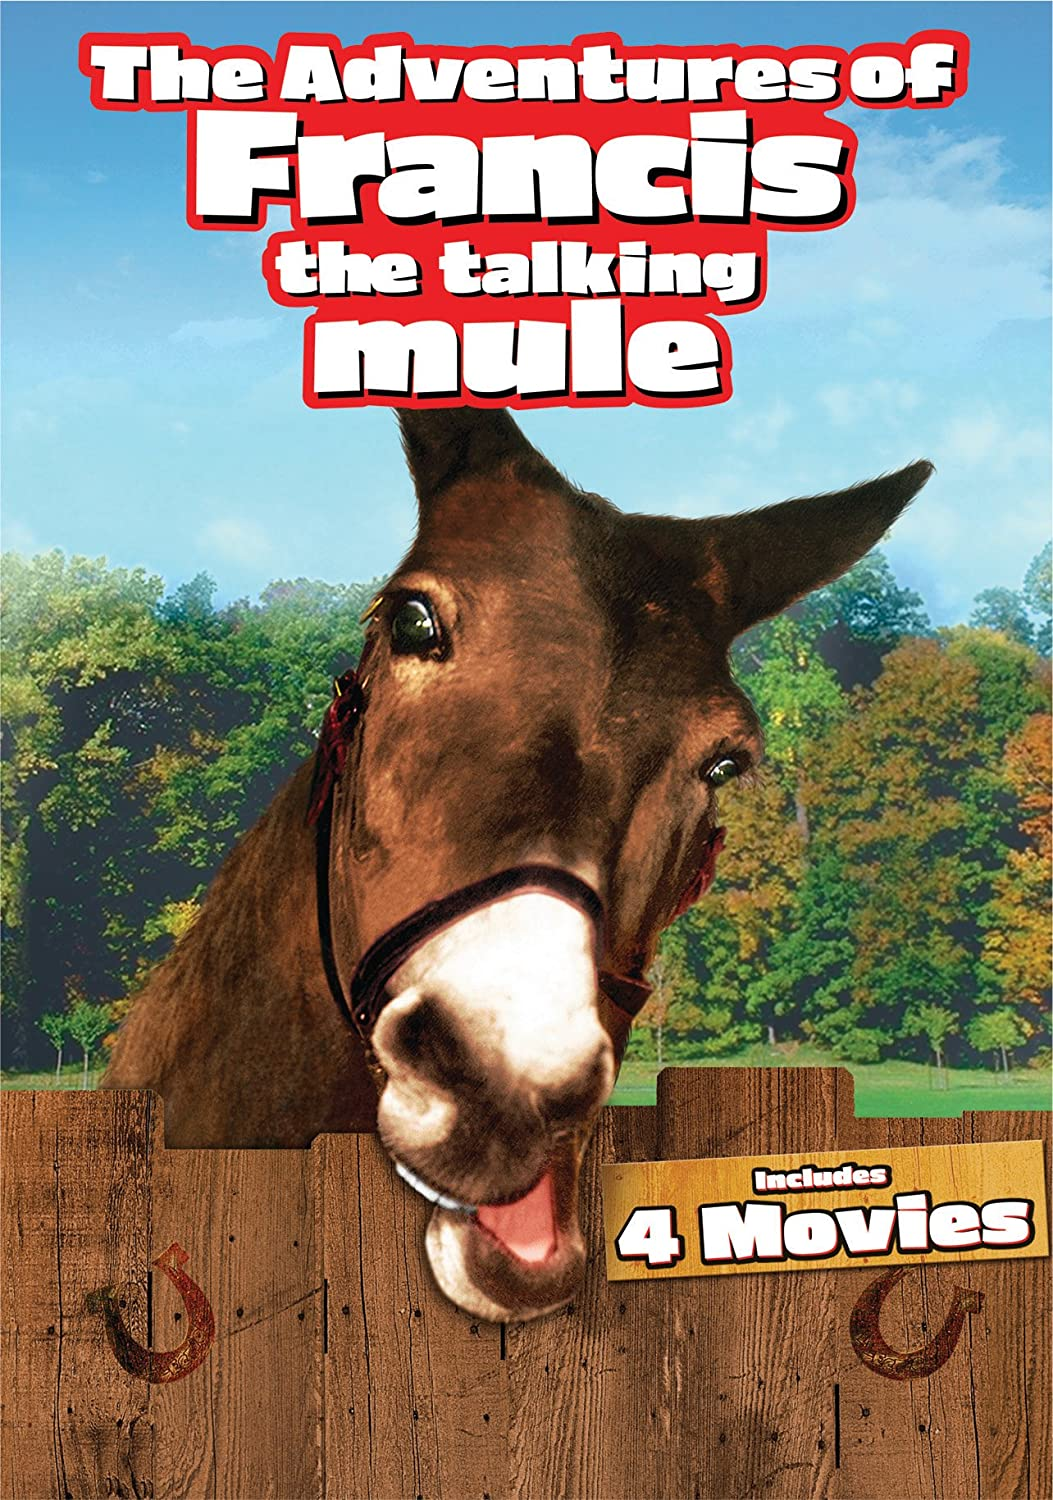 The Adventures of Francis Financial sales sale Talking the High material Mule